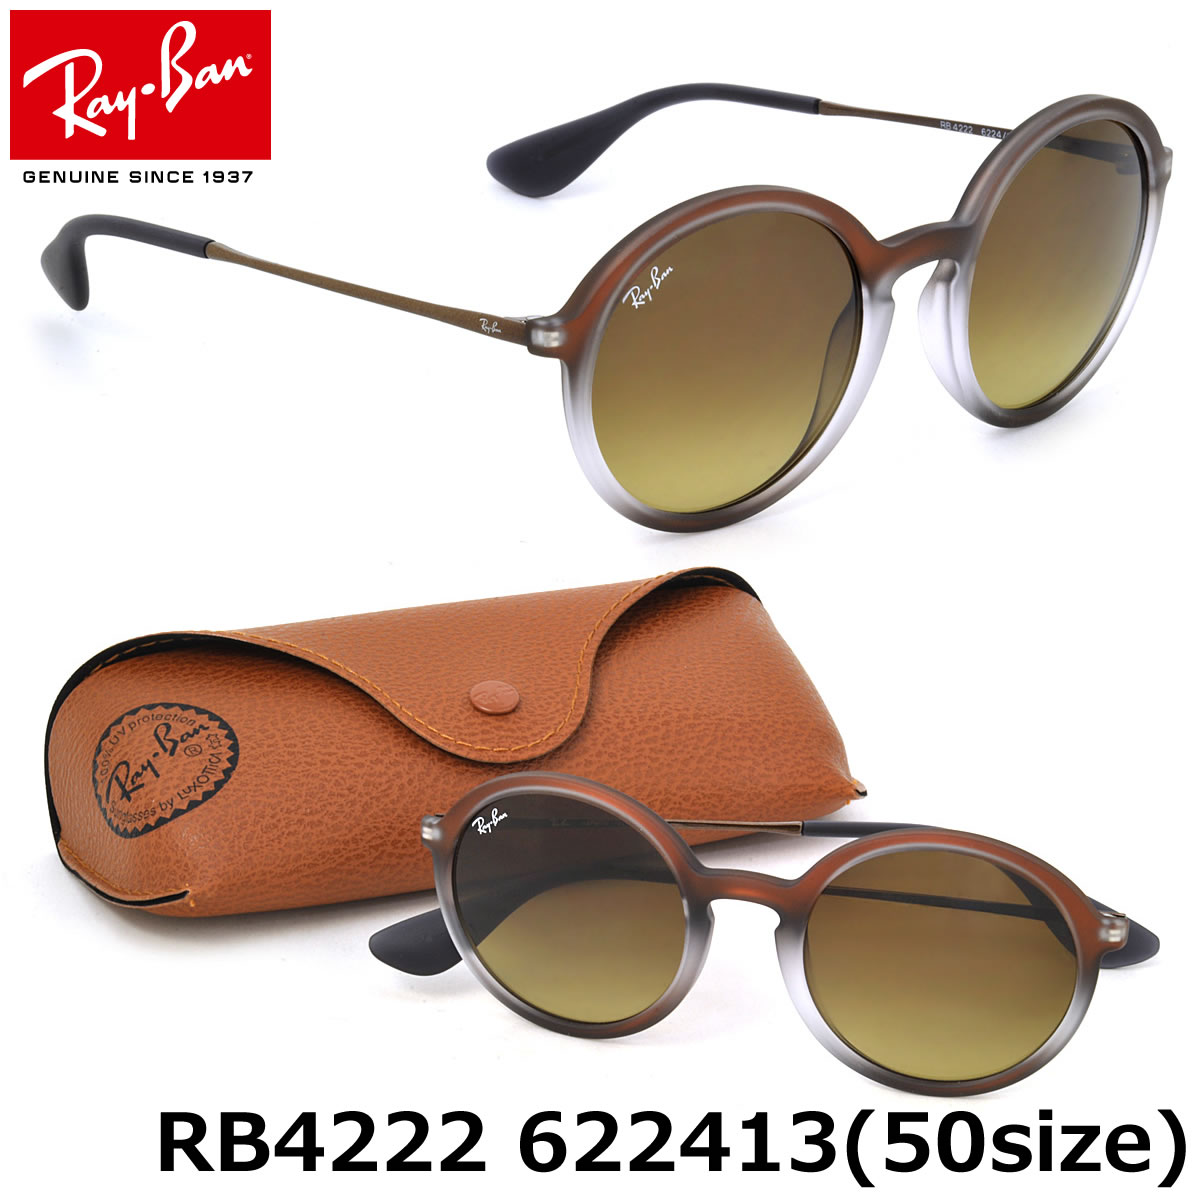 b46b036555 Exquisite workmanship unique to numerous classical design has been rebuilt  in the shape of modern Ray-Ban.